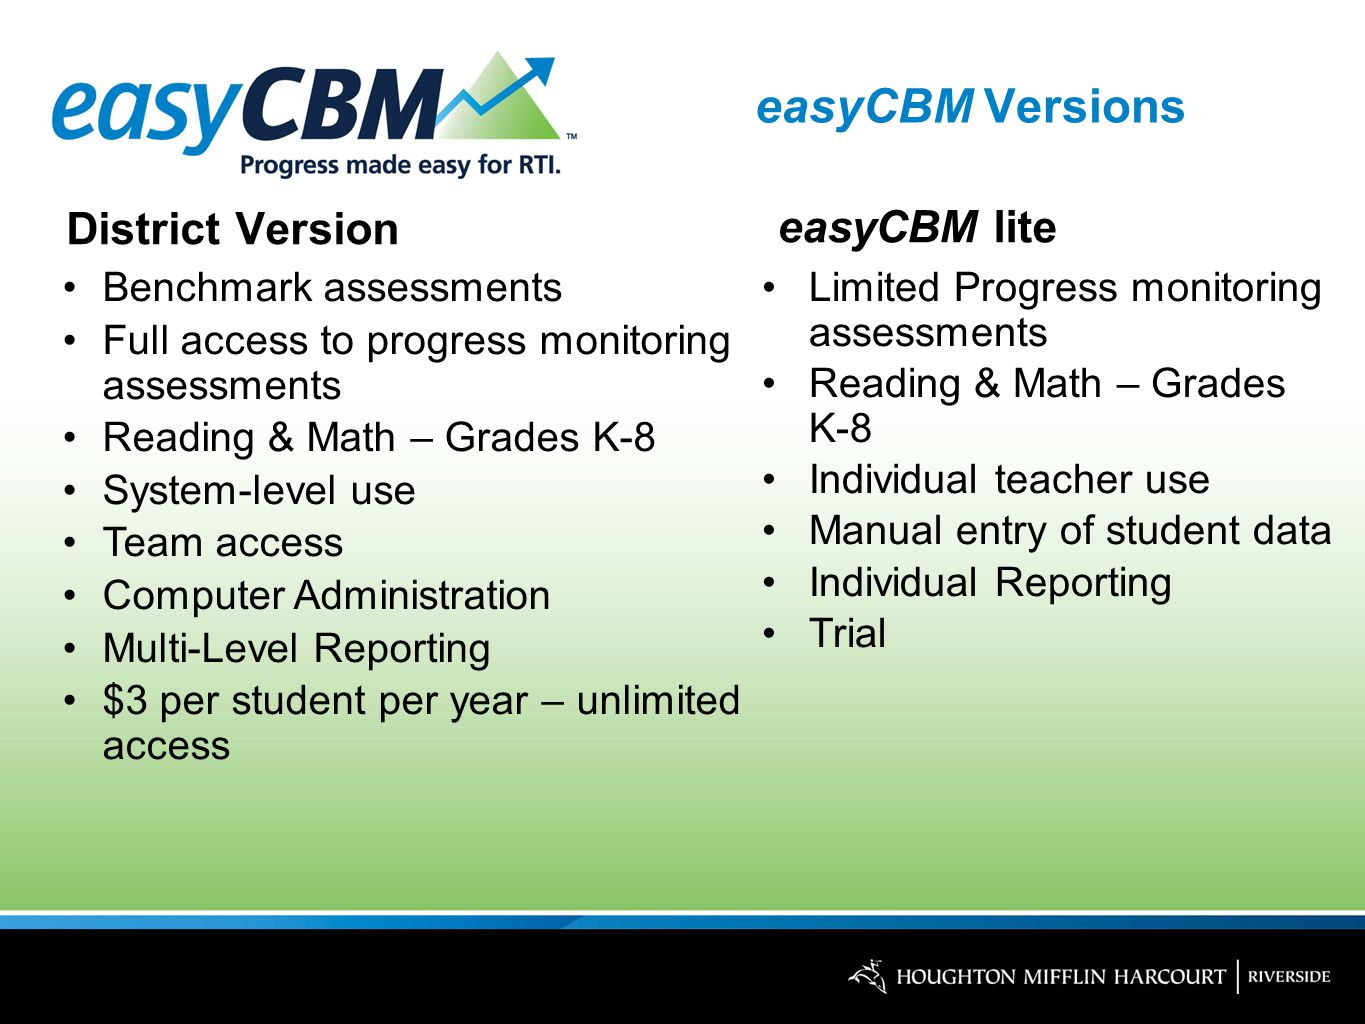 easyCBM Versions District Version Benchmark assessments Full access to progress monitoring assessments Reading & Math – Grades K-8 System-level use Team access Computer Administration Multi-Level Reporting $3 per student per year – unlimited access easyCBM lite Limited Progress monitoring assessments Reading & Math – Grades K-8 Individual teacher use Manual entry of student data Individual Reporting Trial